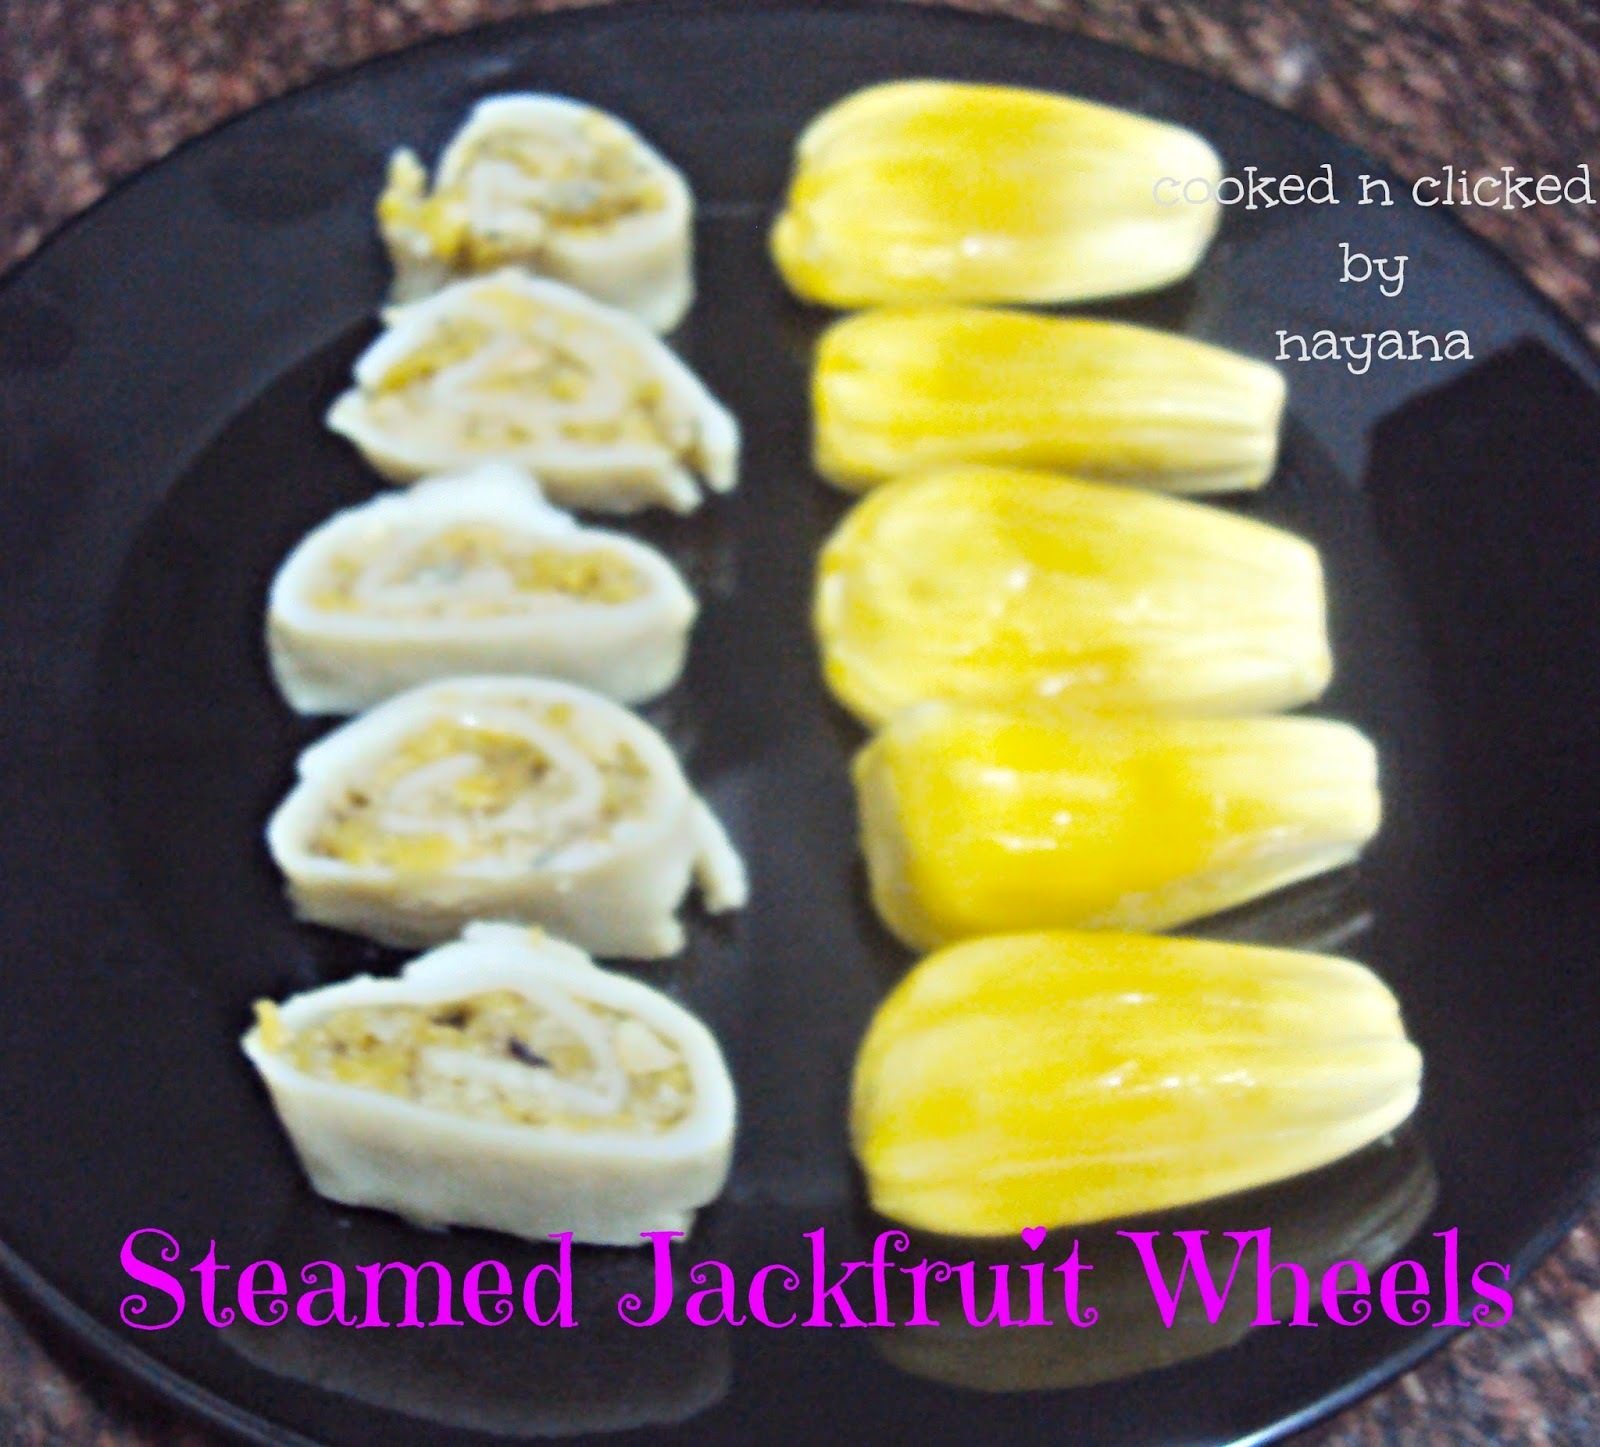 Steamed Jackfruit Wheels - For Shhh Cooking Secretly Challenge